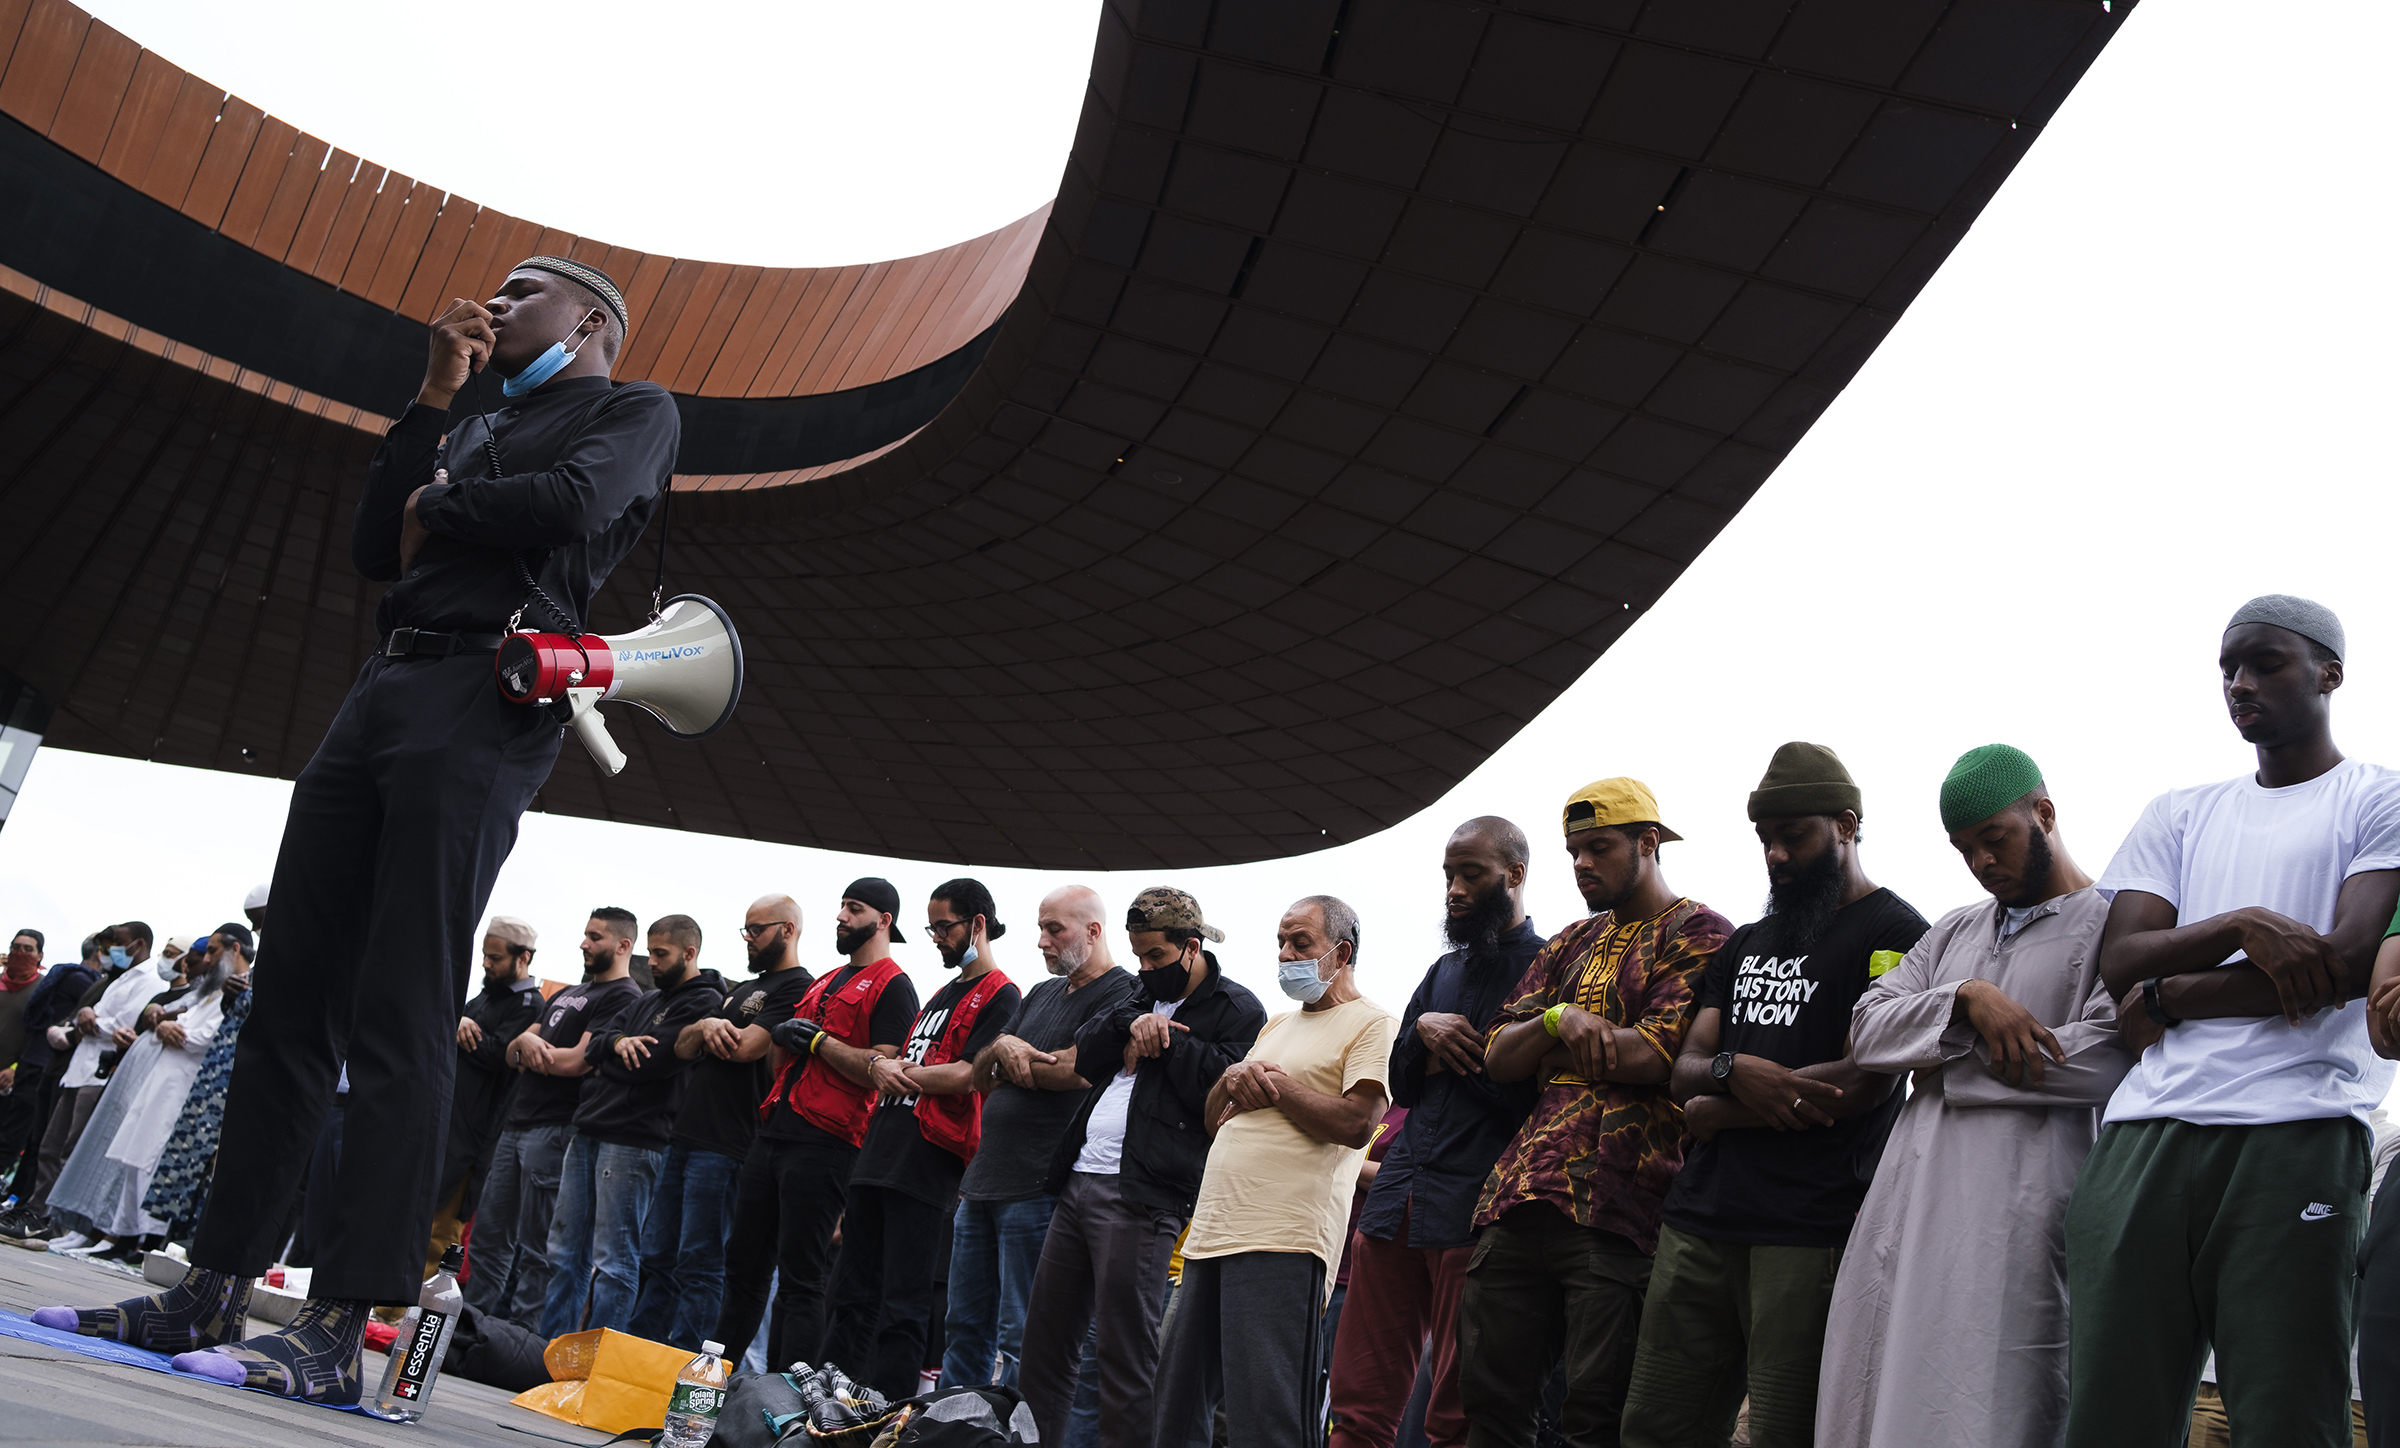 A group of Muslims gather for Friday prayers and Khutbah, and a subsequent Black Lives Matter march, outside of the Barclay's Center in Brooklyn, New York, June 5, 2020.